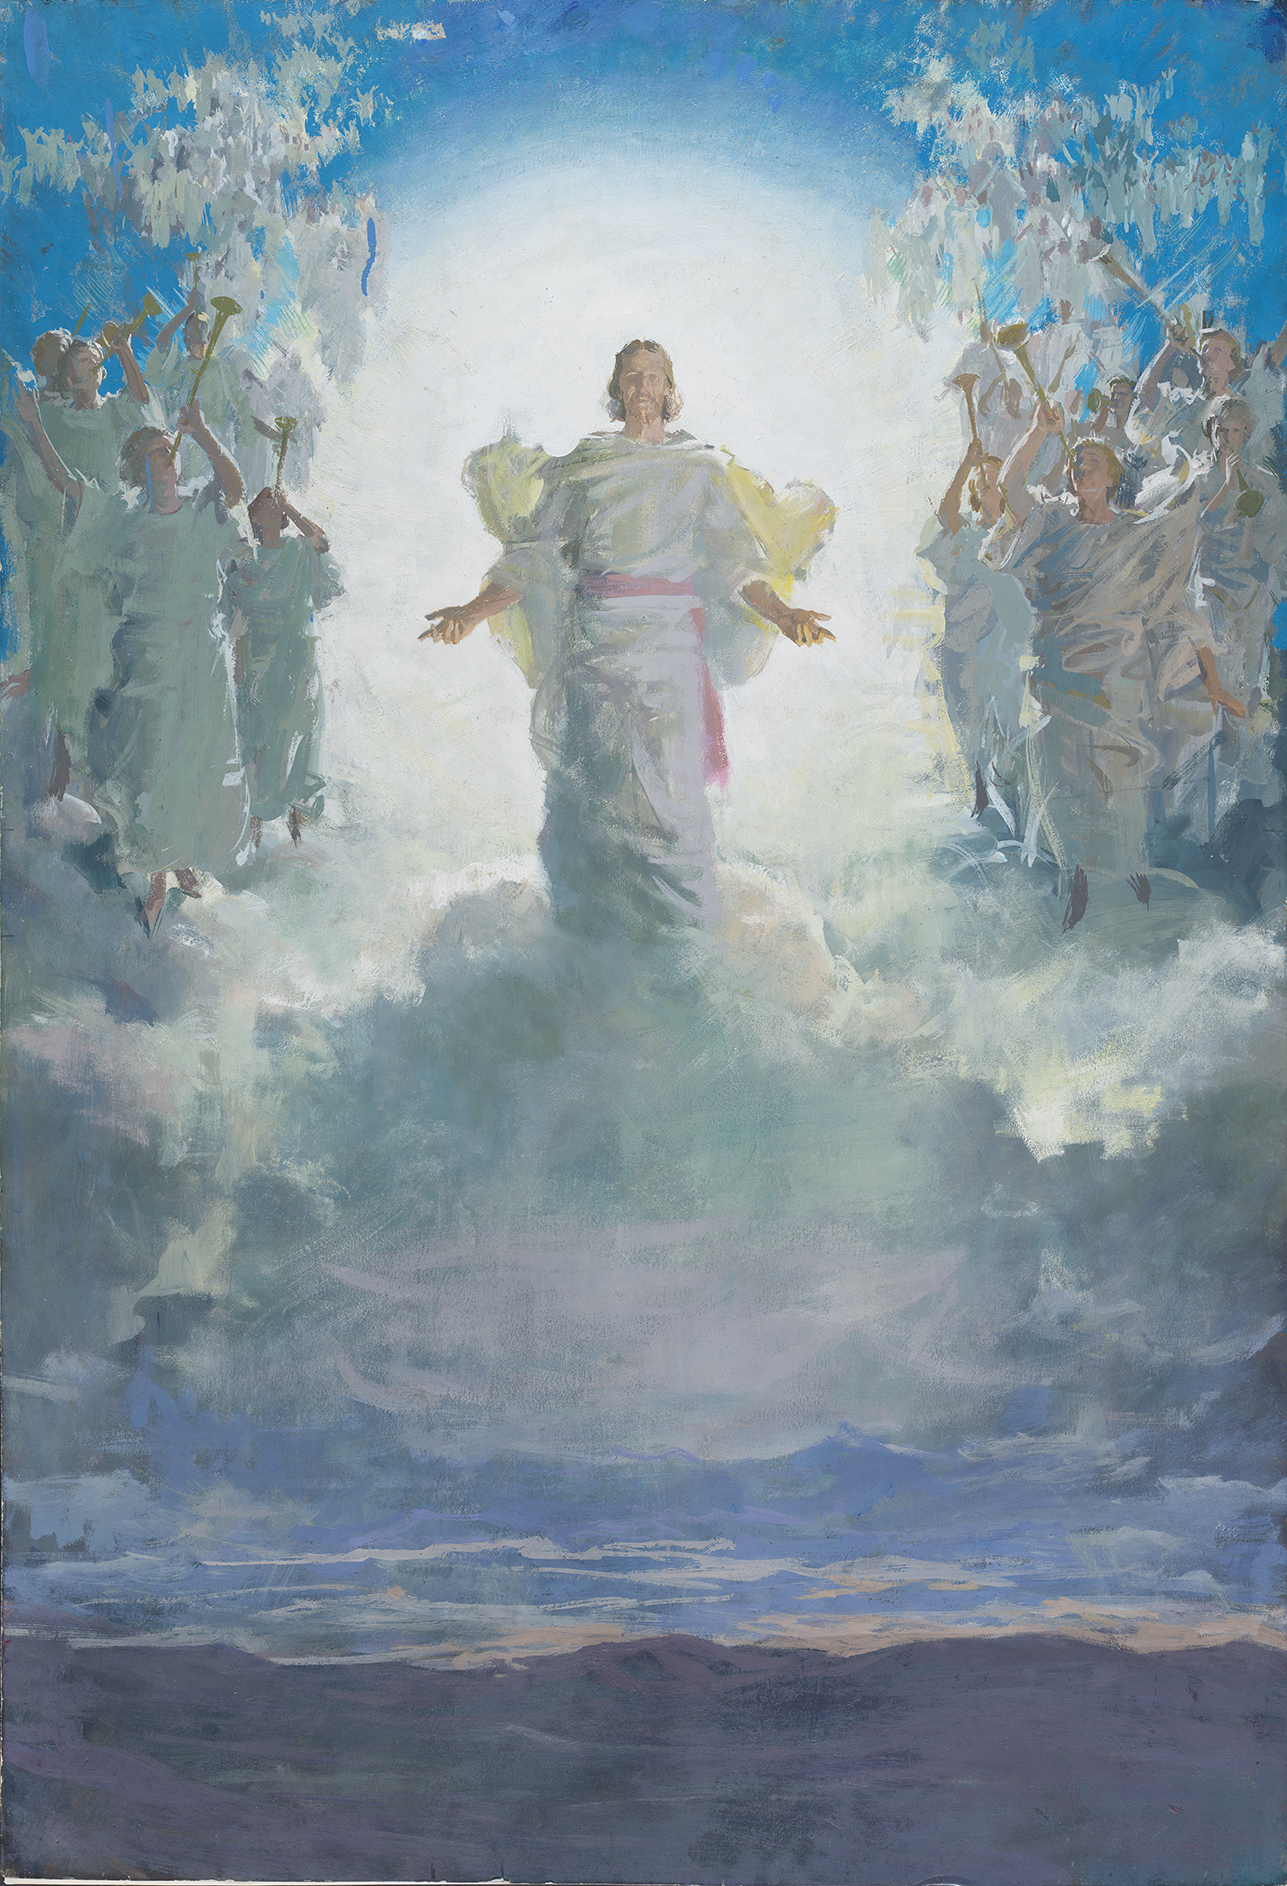 Jesus Second Coming Painting : jesus, second, coming, painting, Legacy, Making:, Paint, Studies, Harry, Anderson